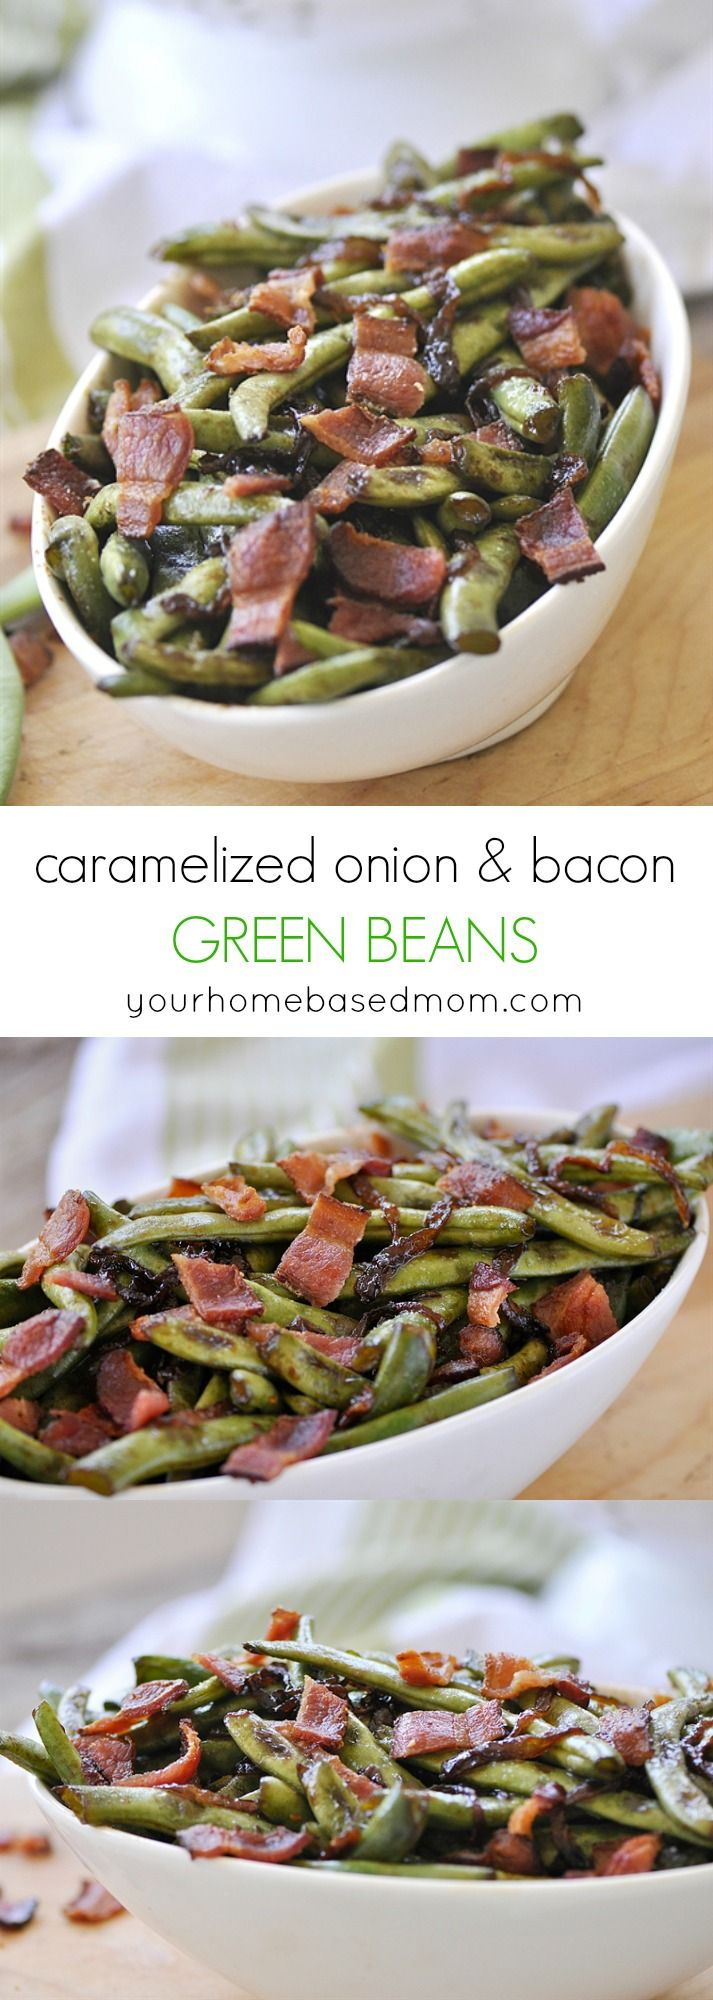 Caramelized Onion and Bacon Green Beans | Recipe | Green ...